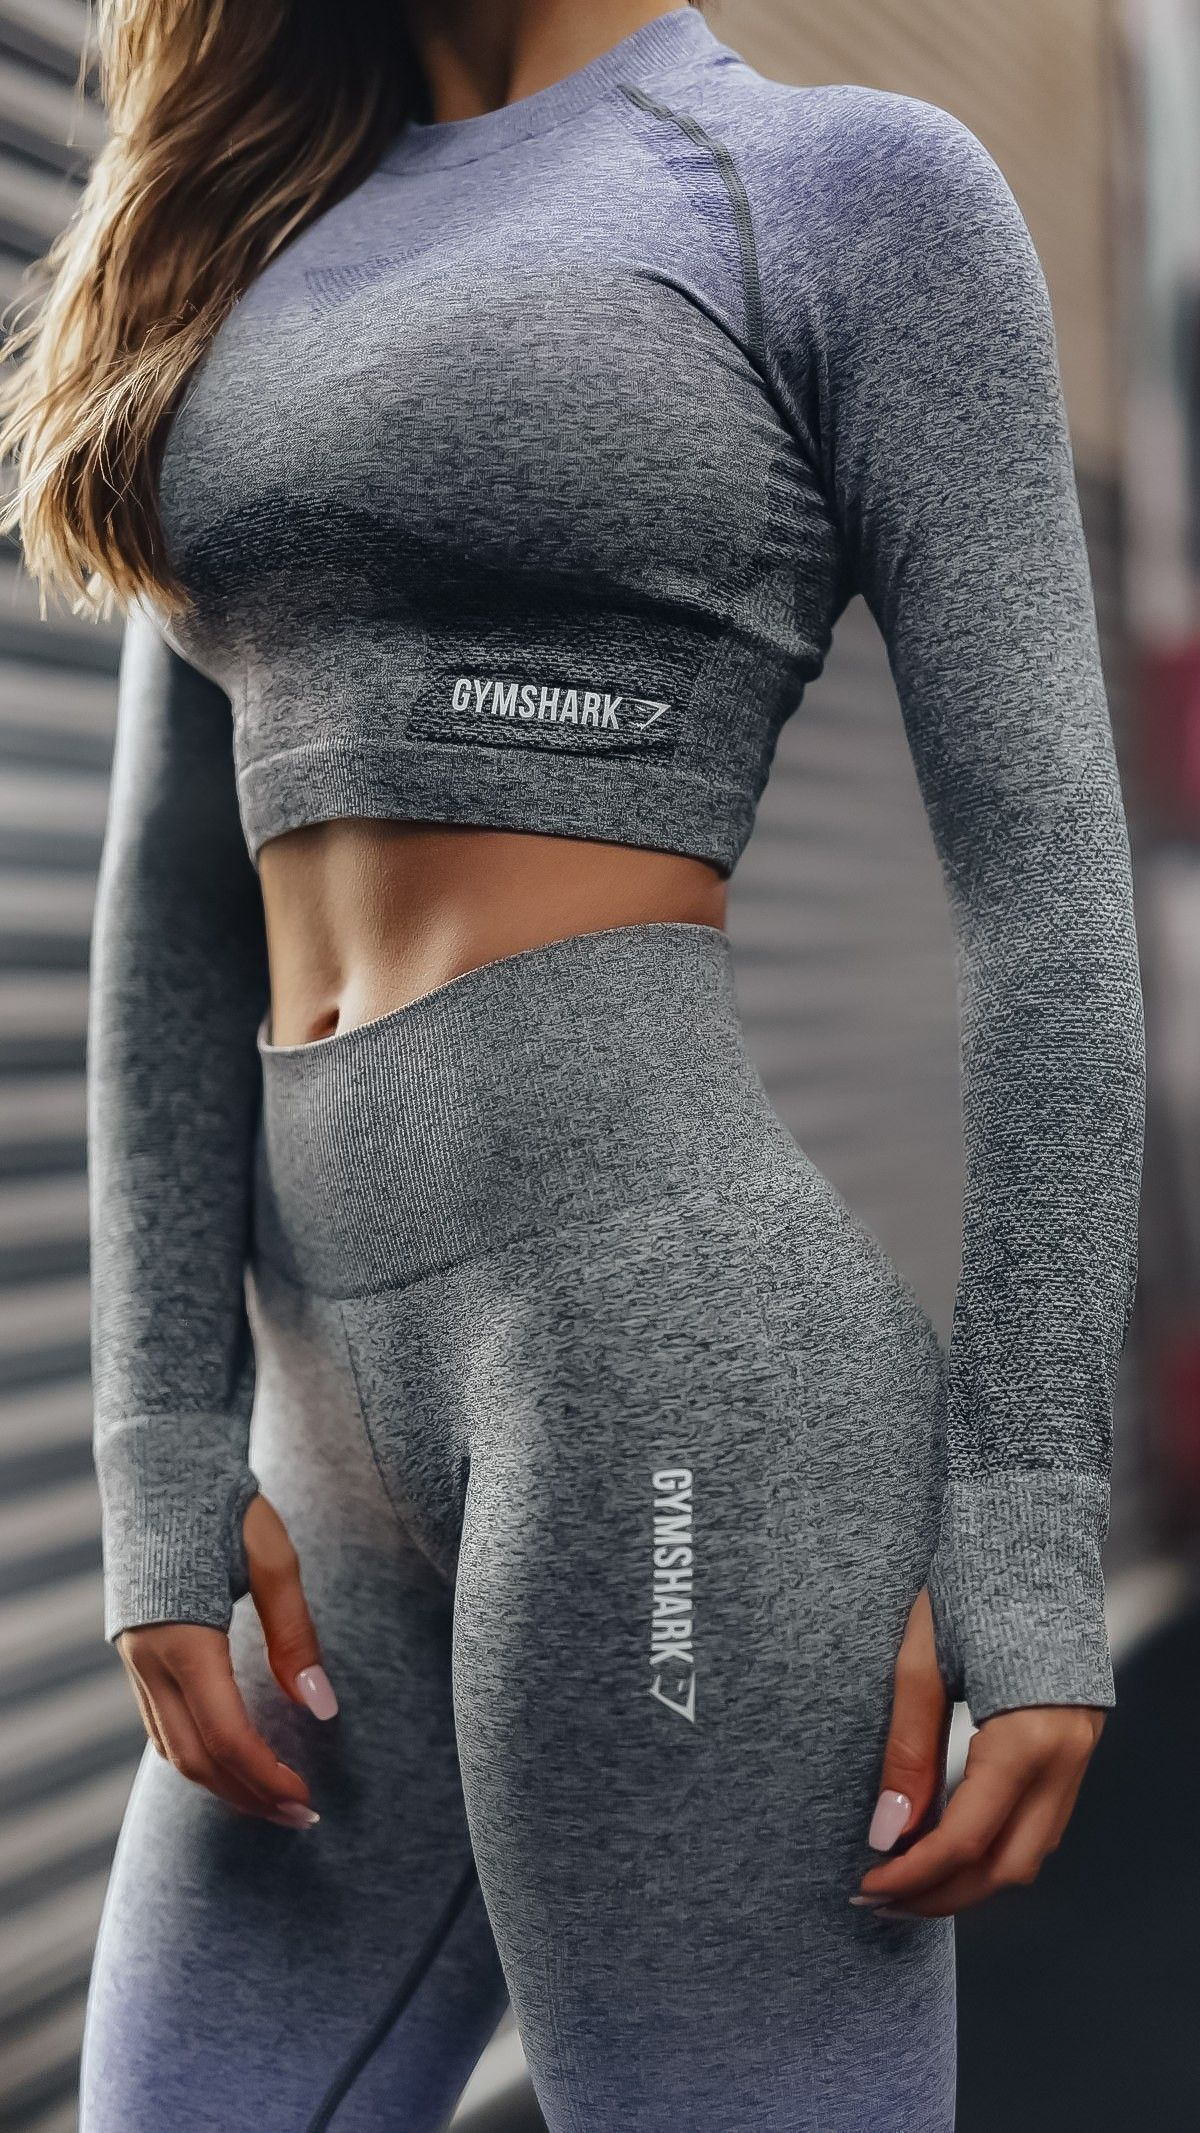 Really want that outfit -   21 fitness outfits curves ideas